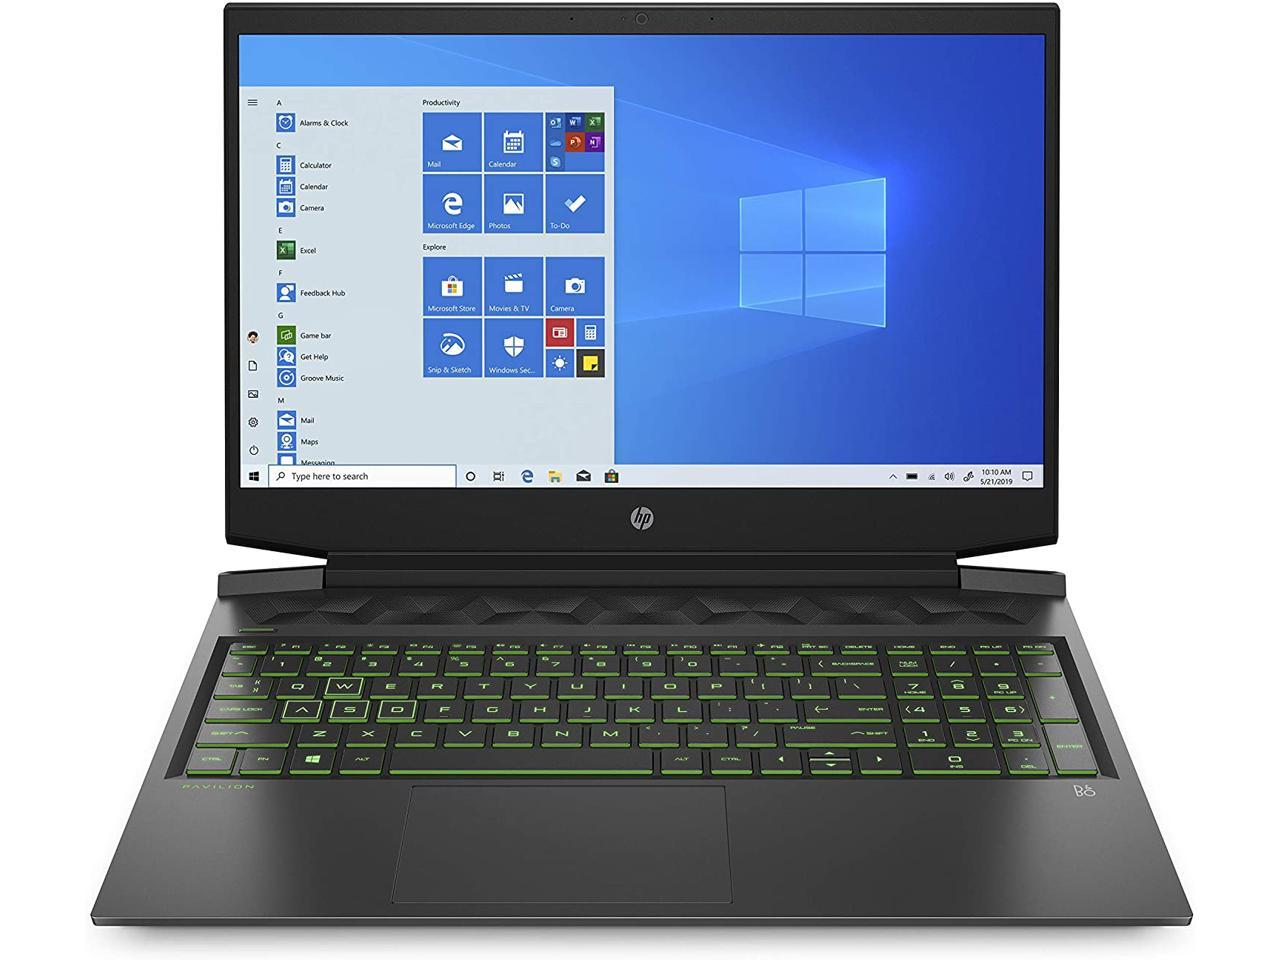 Hp Pavilion 16 1 Intel Core I5 10300h Geforce Gtx 1650 Ti 8 Gb Memory 512 Gb Ssd Windows 10 Home Gaming Laptop 16 A0020nr Newegg Com